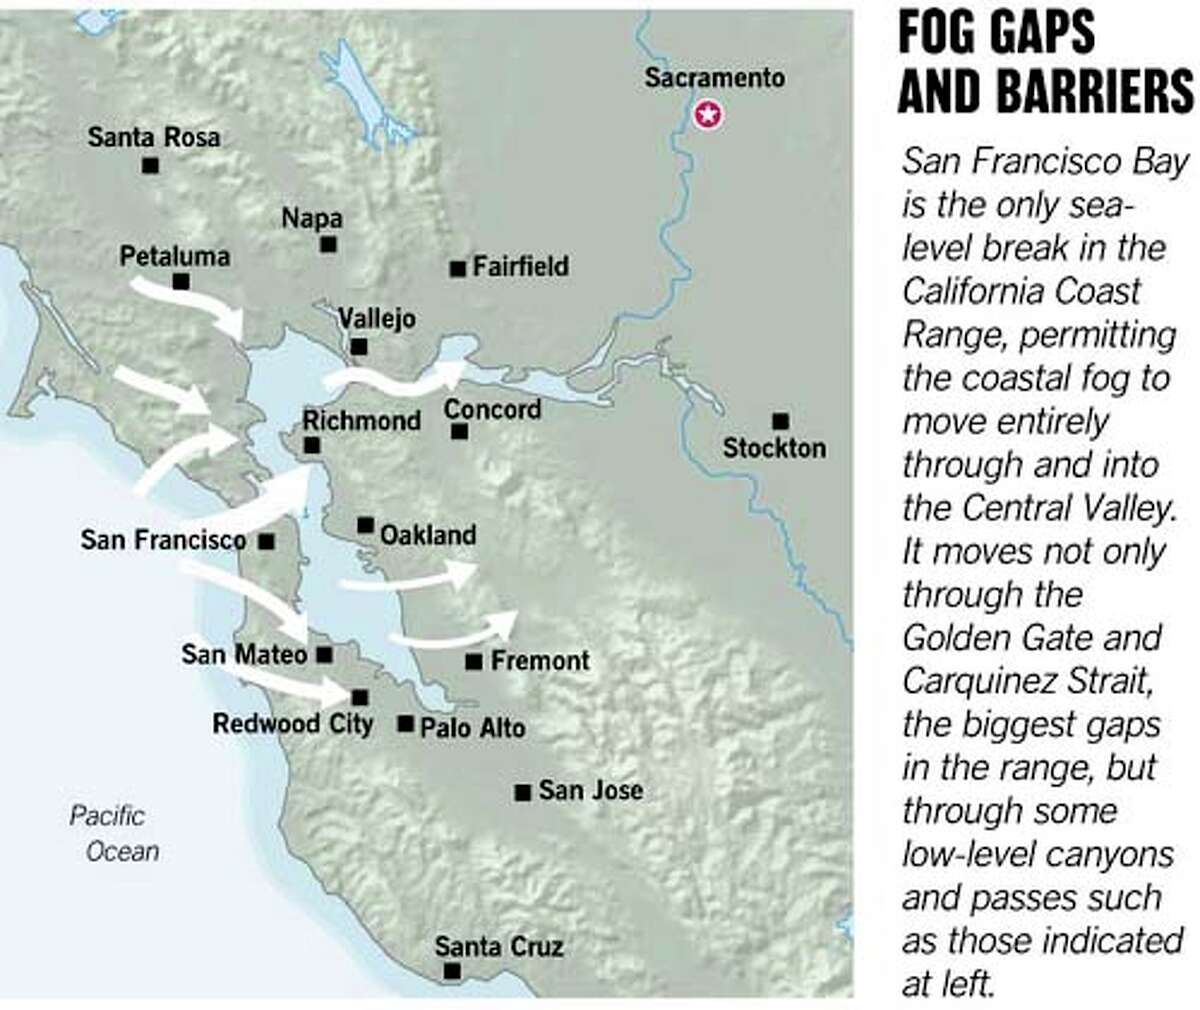 Fog Gaps and Barriers. Chronicle Graphic by Joe Shoulak